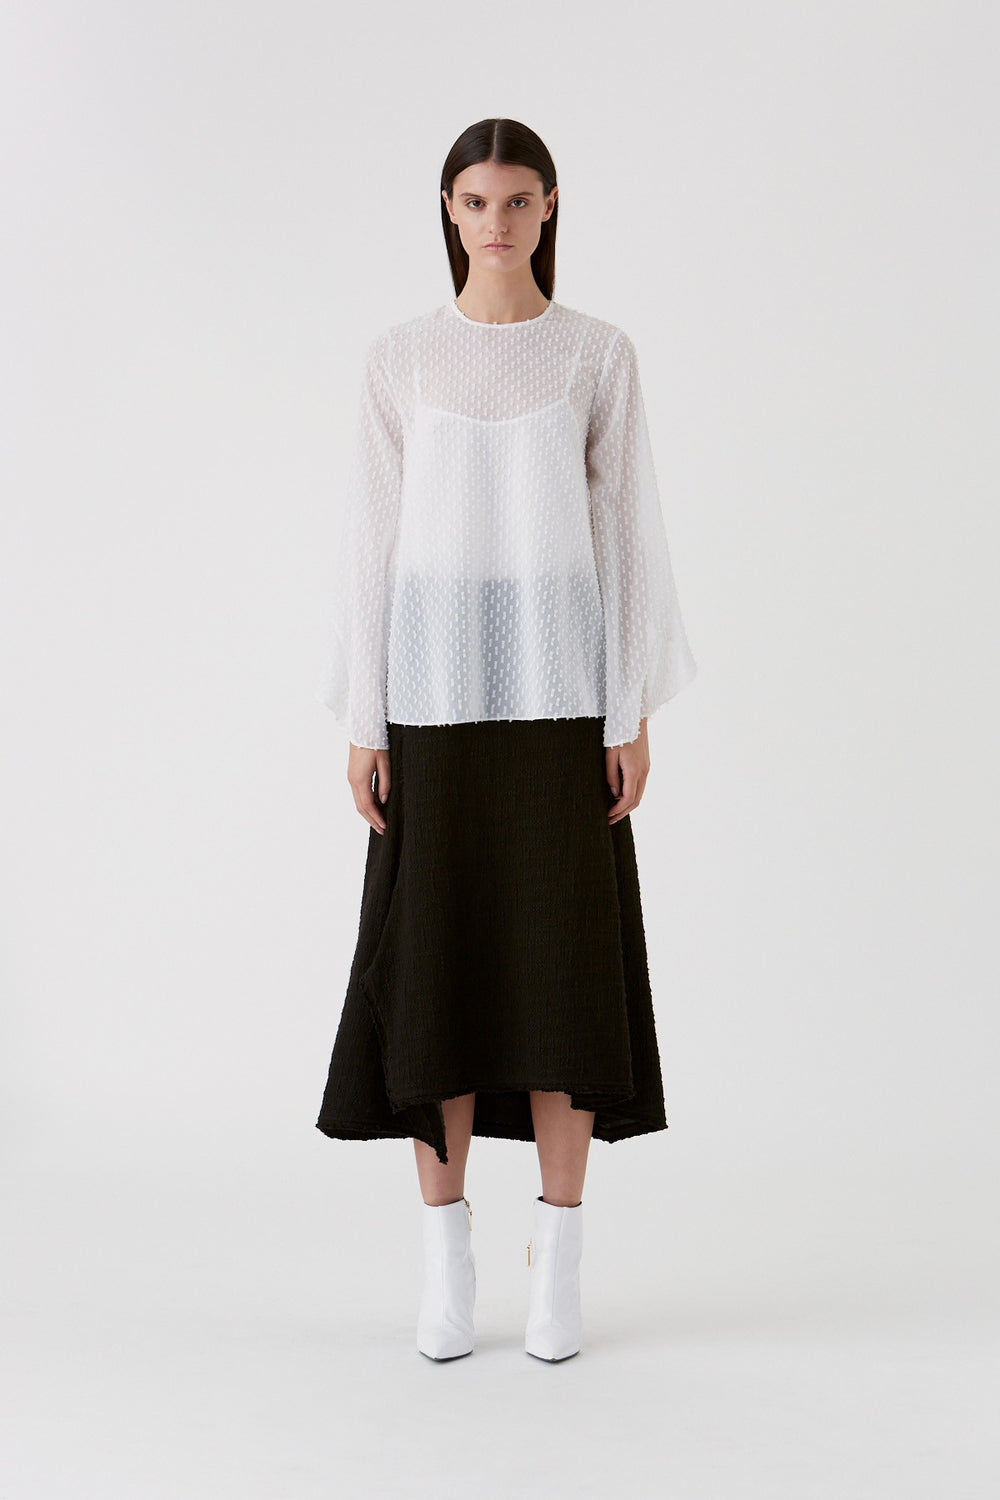 The Evelyn Top in Cold White by CAMILLA AND MARC